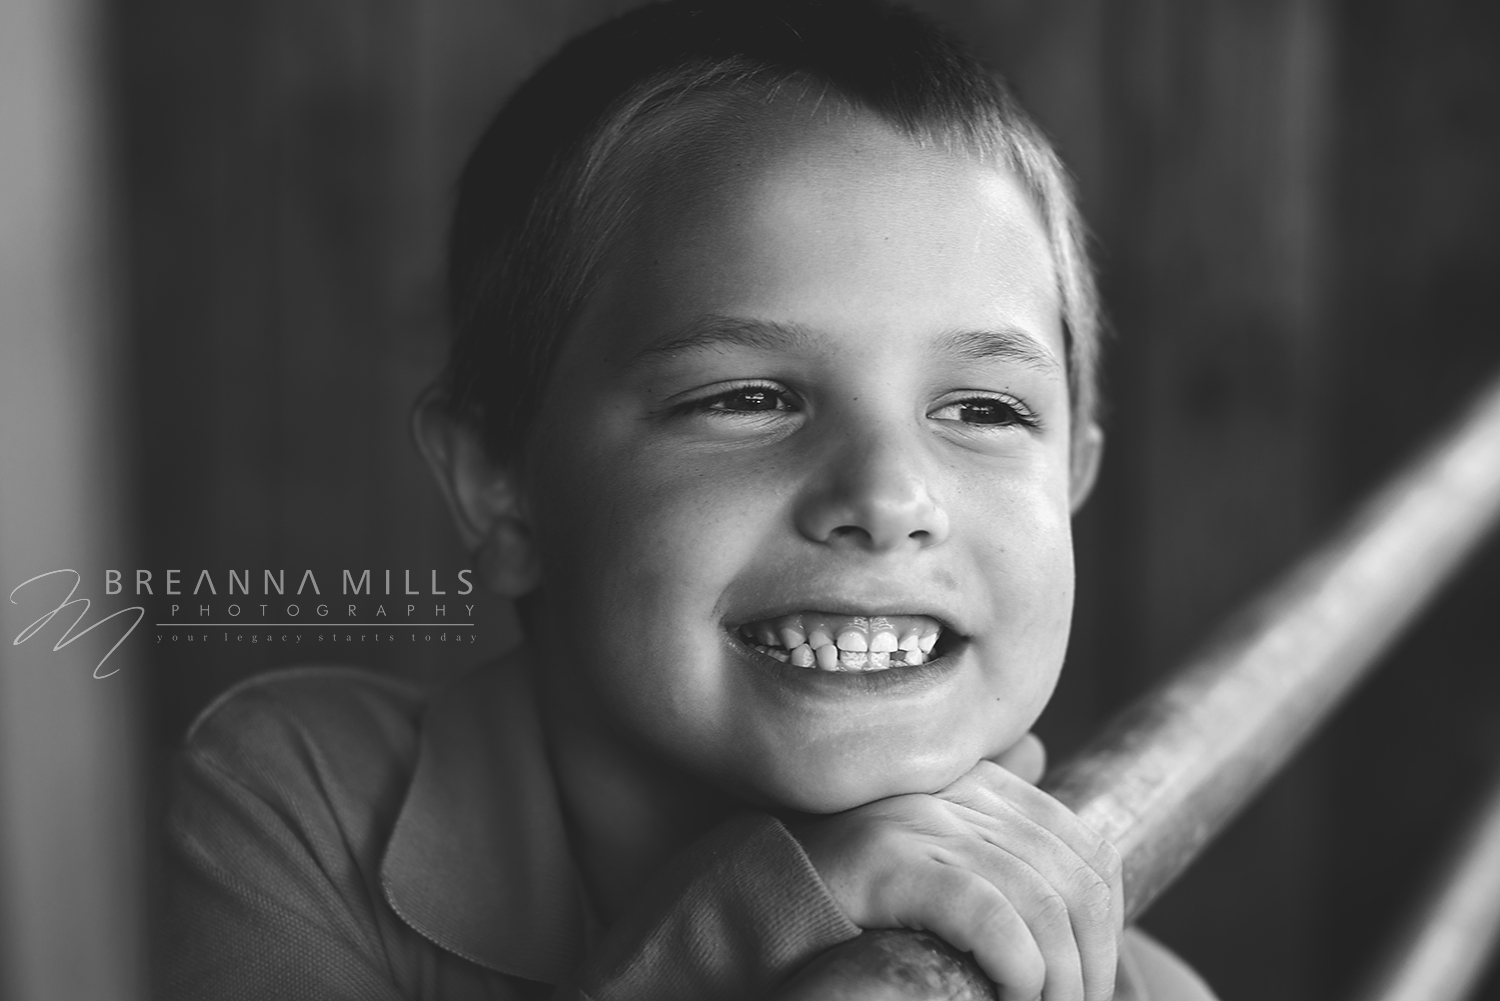 johnson-city-child-and-family-photographer-breanna-mills-photography-simerly (7).jpg